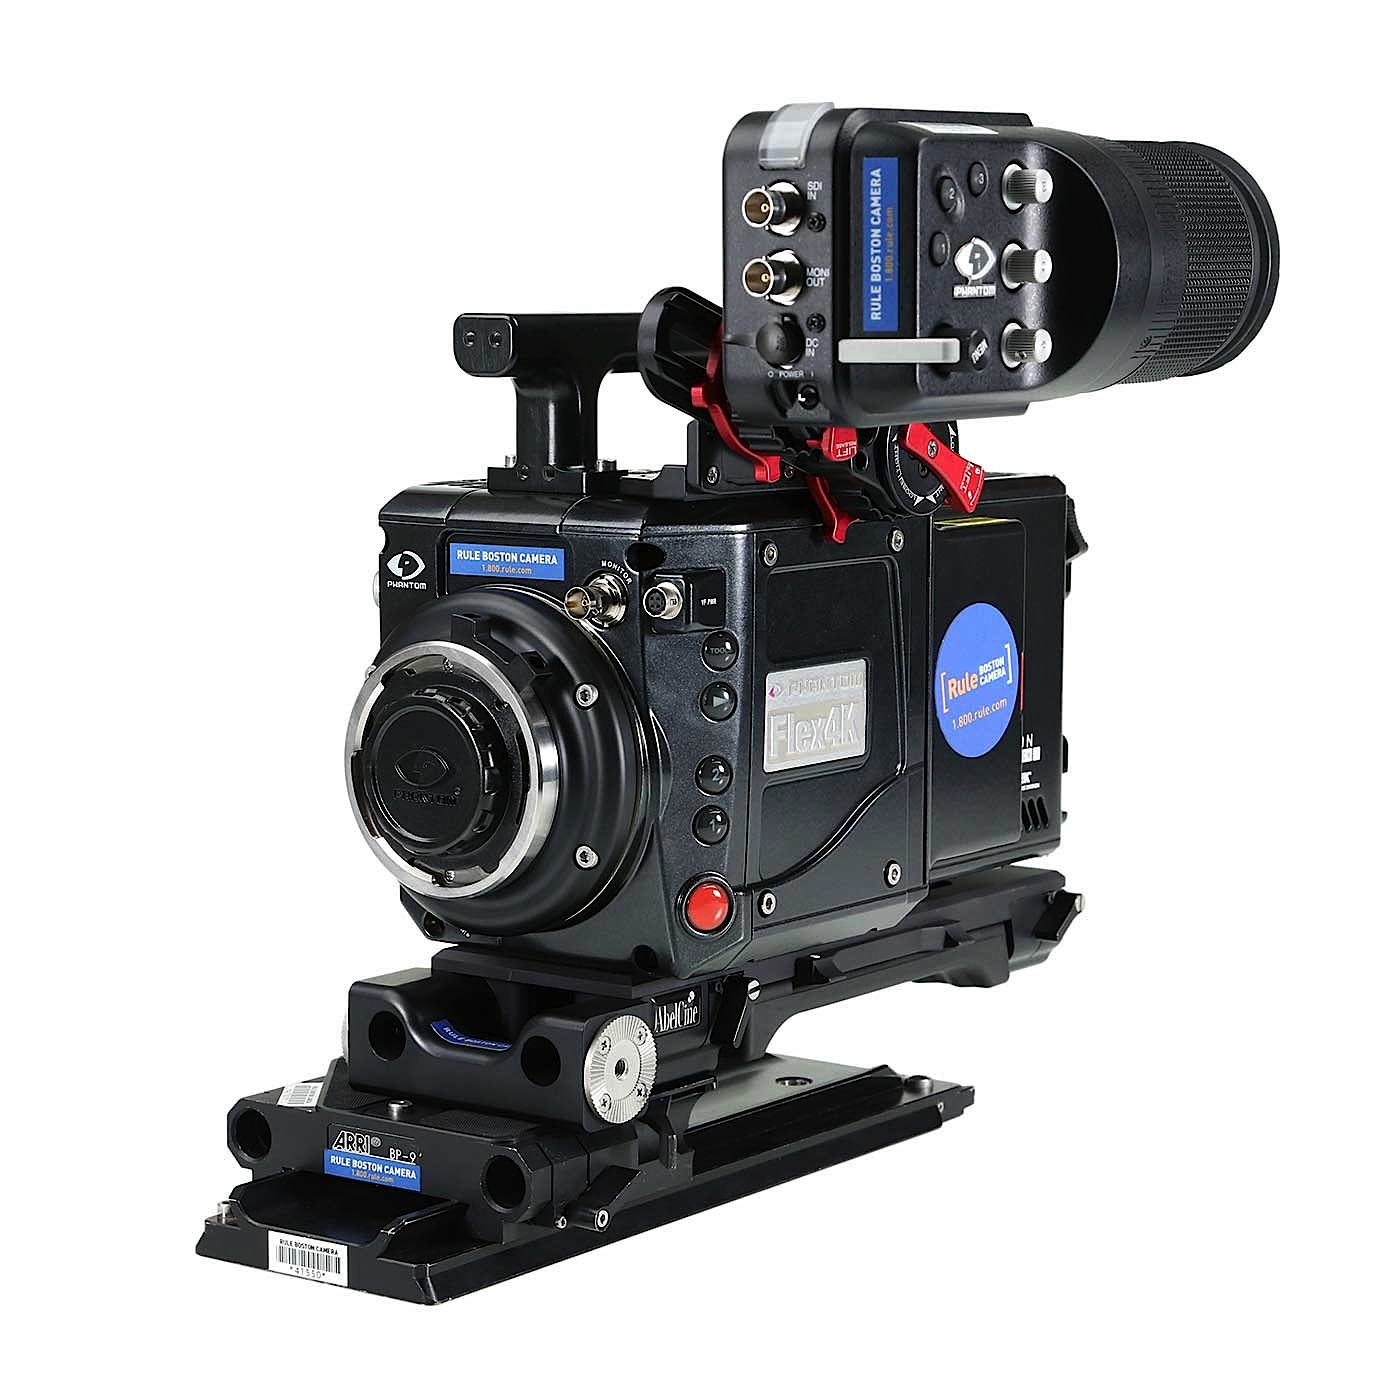 Phantom flex 4k high speed digital cinema camera rule camera for Camera camera